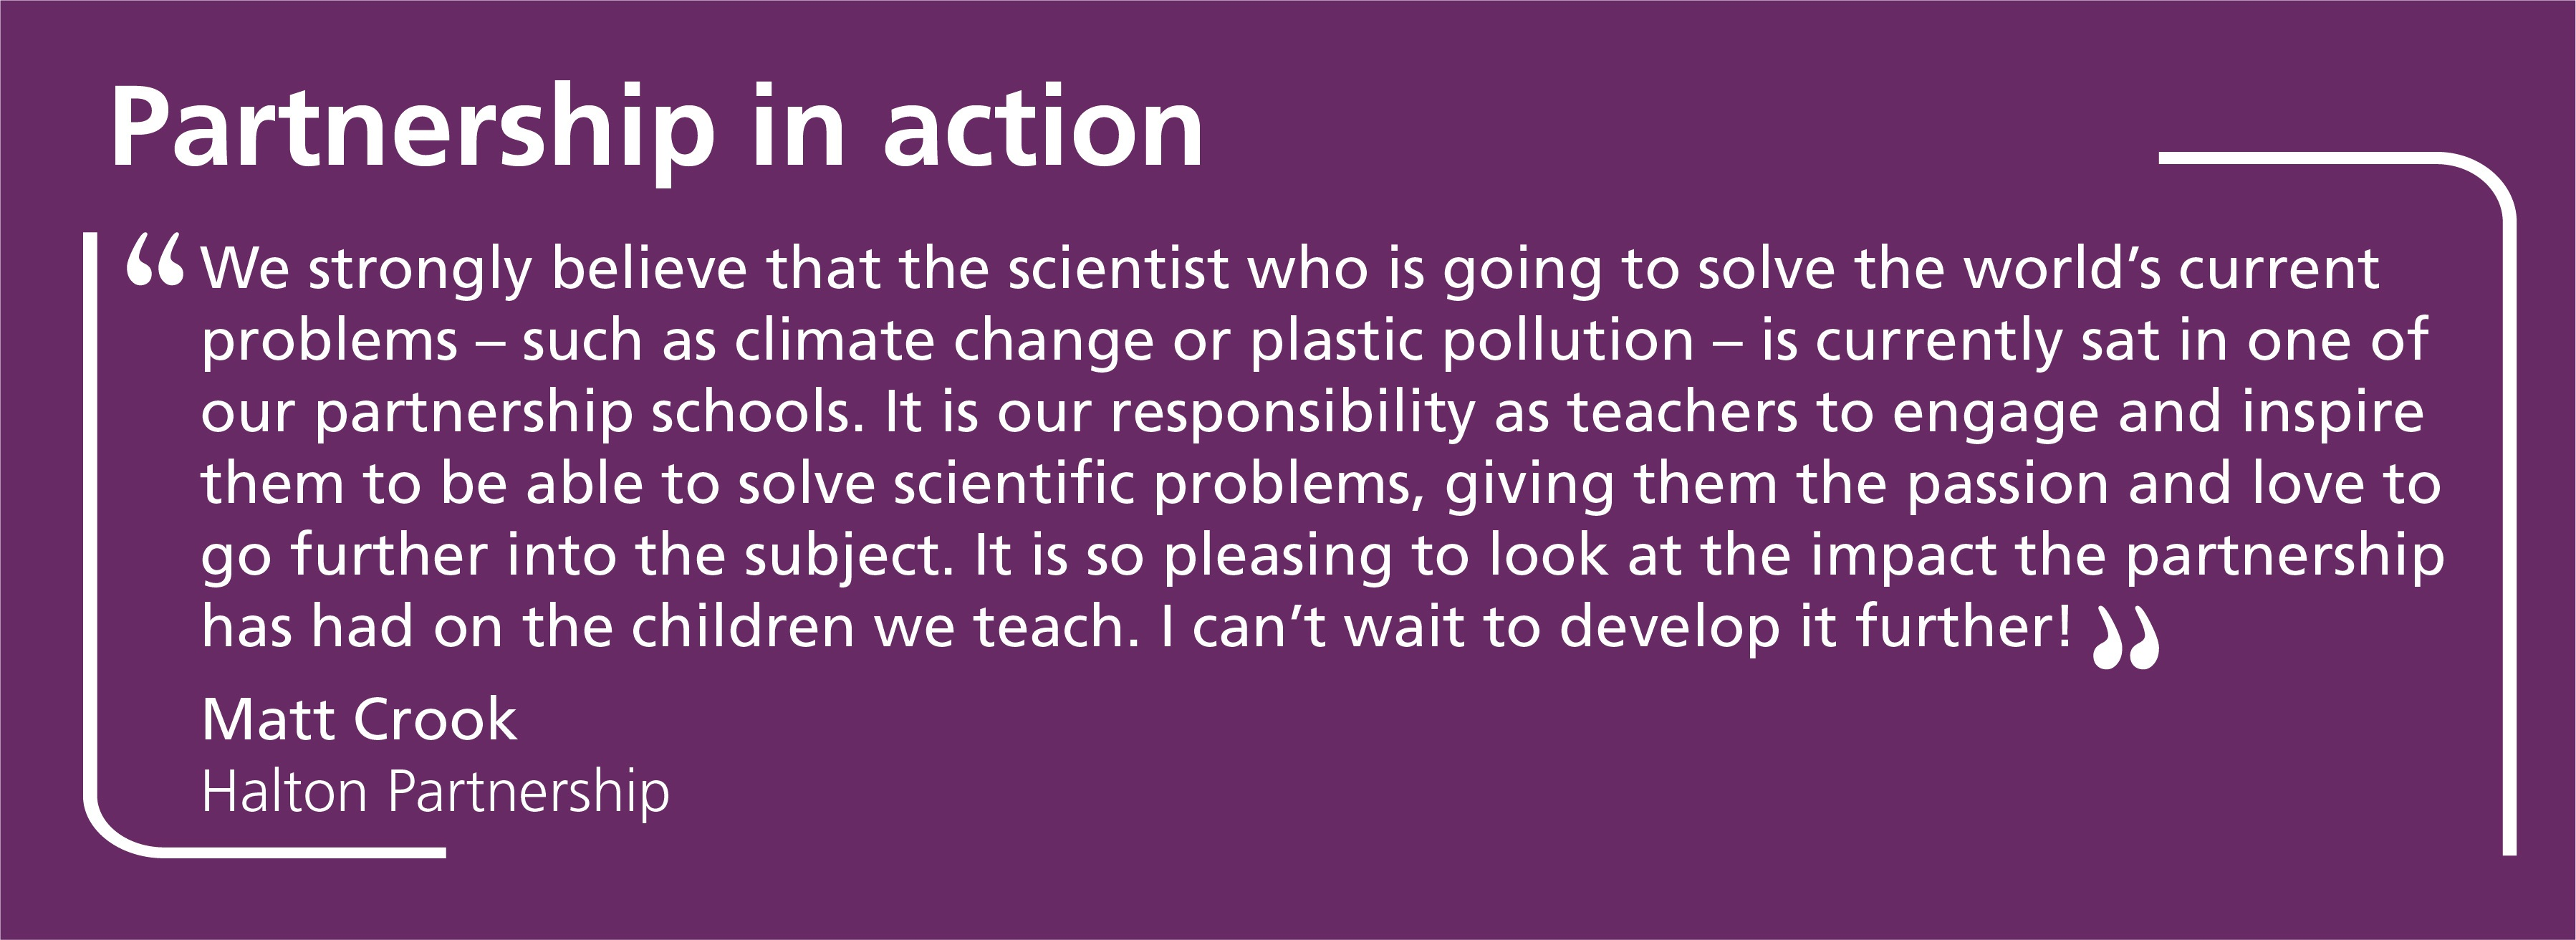 We strongly believe that the scientist who is going to solve the world's current problems – such as climate change or plastic pollution – is currently sat in one of our partnership schools. It is our responsibility as teachers to engage and inspire them to be able to solve scientific problems, giving them the passion and love to go further into the subject. It is so pleasing to look at the impact the partnership has had on the children we teach. I can't wait to develop it further!